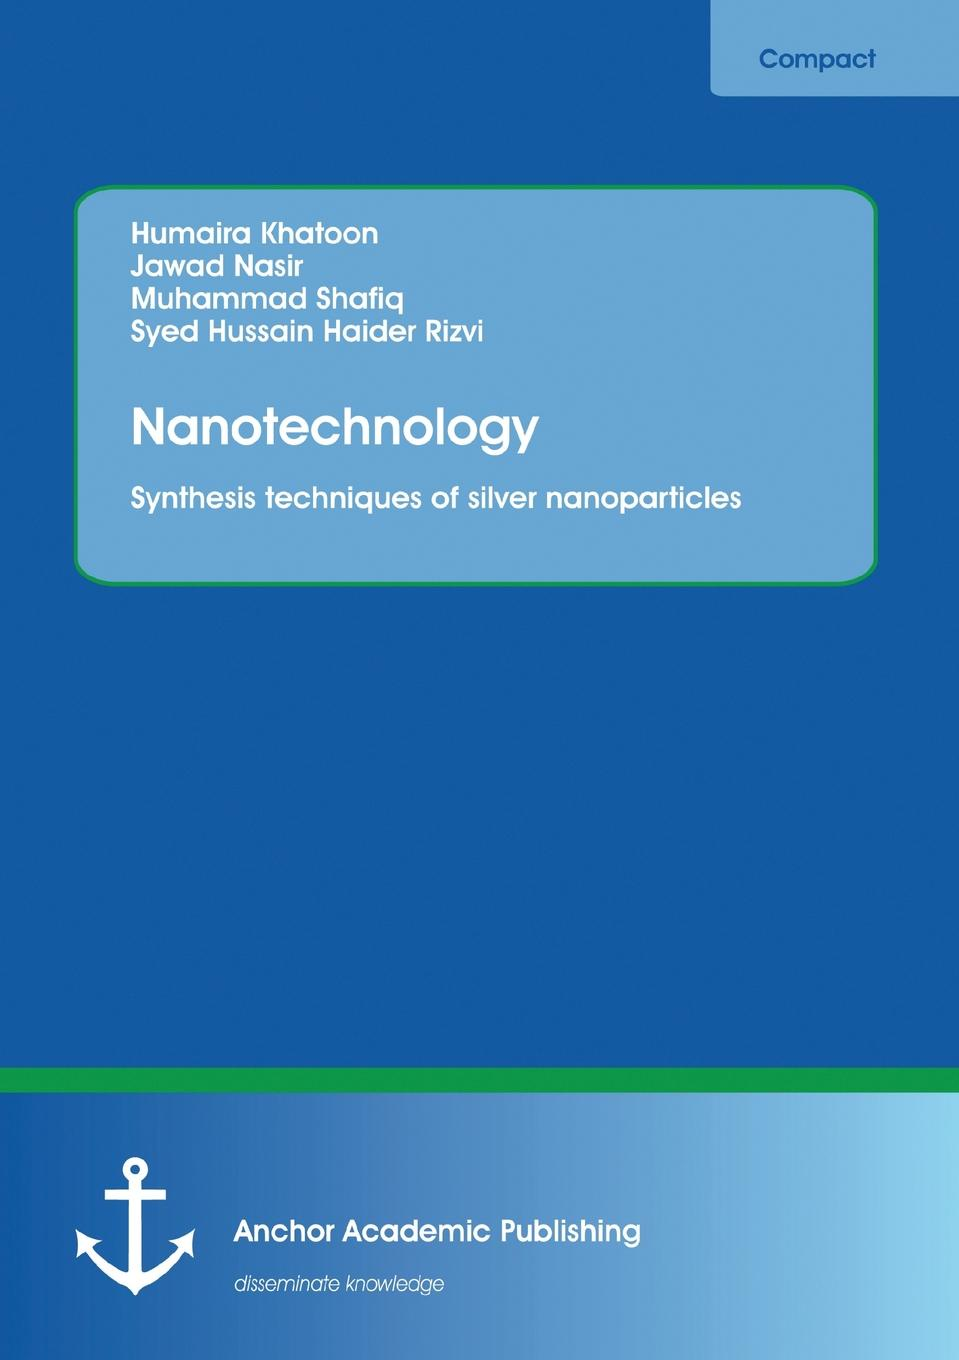 Syed Hussain Haider Rizvi, Muhammad Shafiq, Humaira Khatoon Nanotechnology. Synthesis techniques of silver nanoparticles chen xiaodong soft matter nanotechnology from structure to function